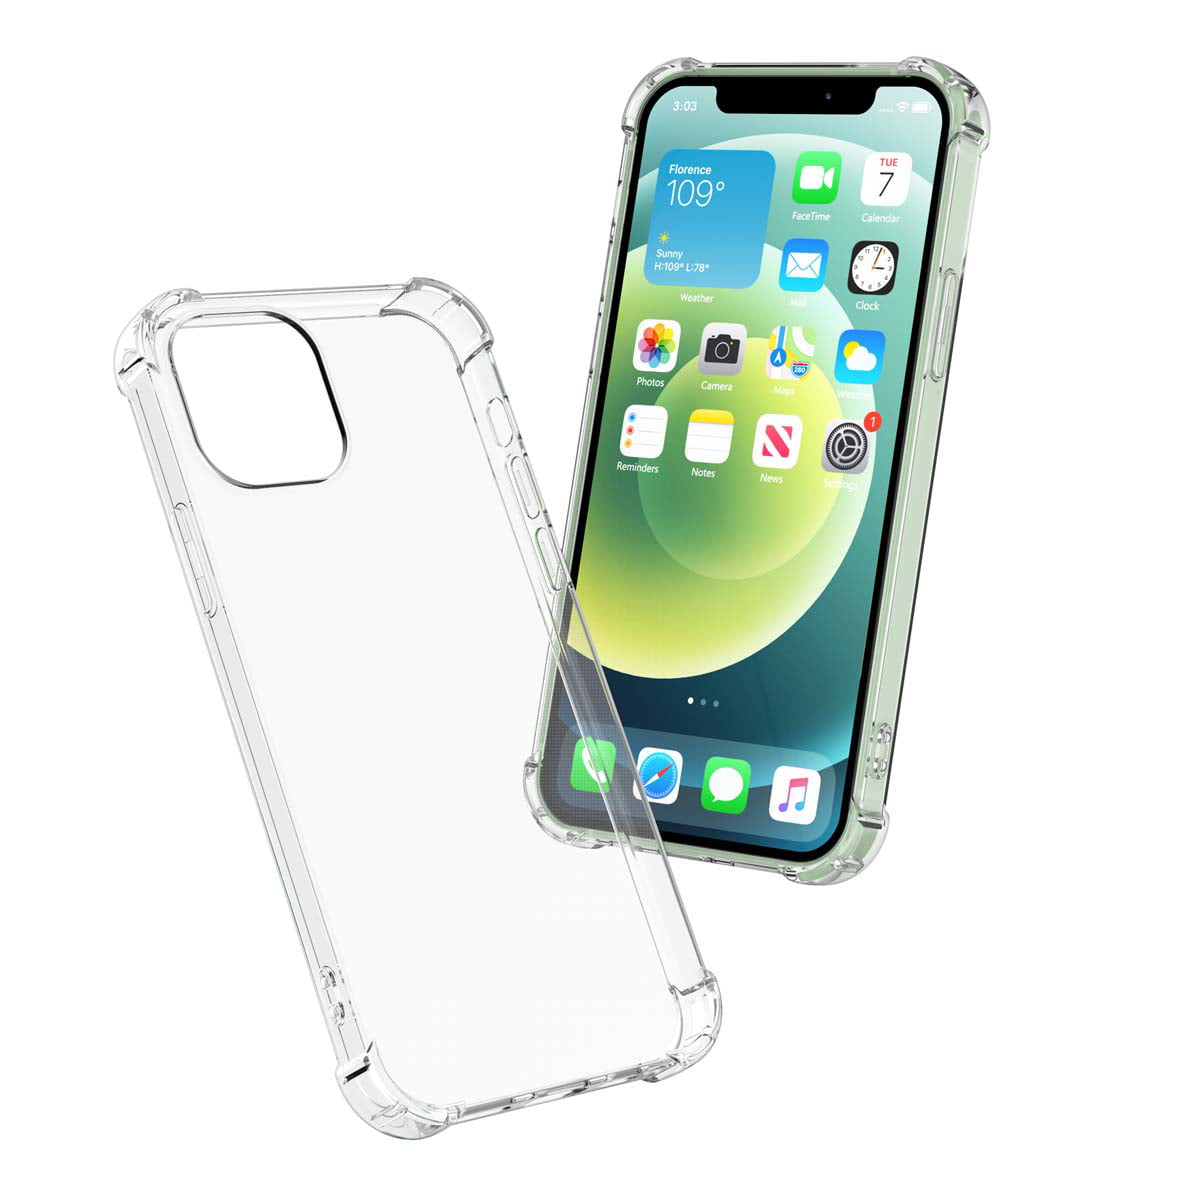 Njjex iPhone 12 Pro Max \/ iPhone 12 \/ iPhone 12 Mini Case, iPhone 12 Pro Crystal Clear Shock